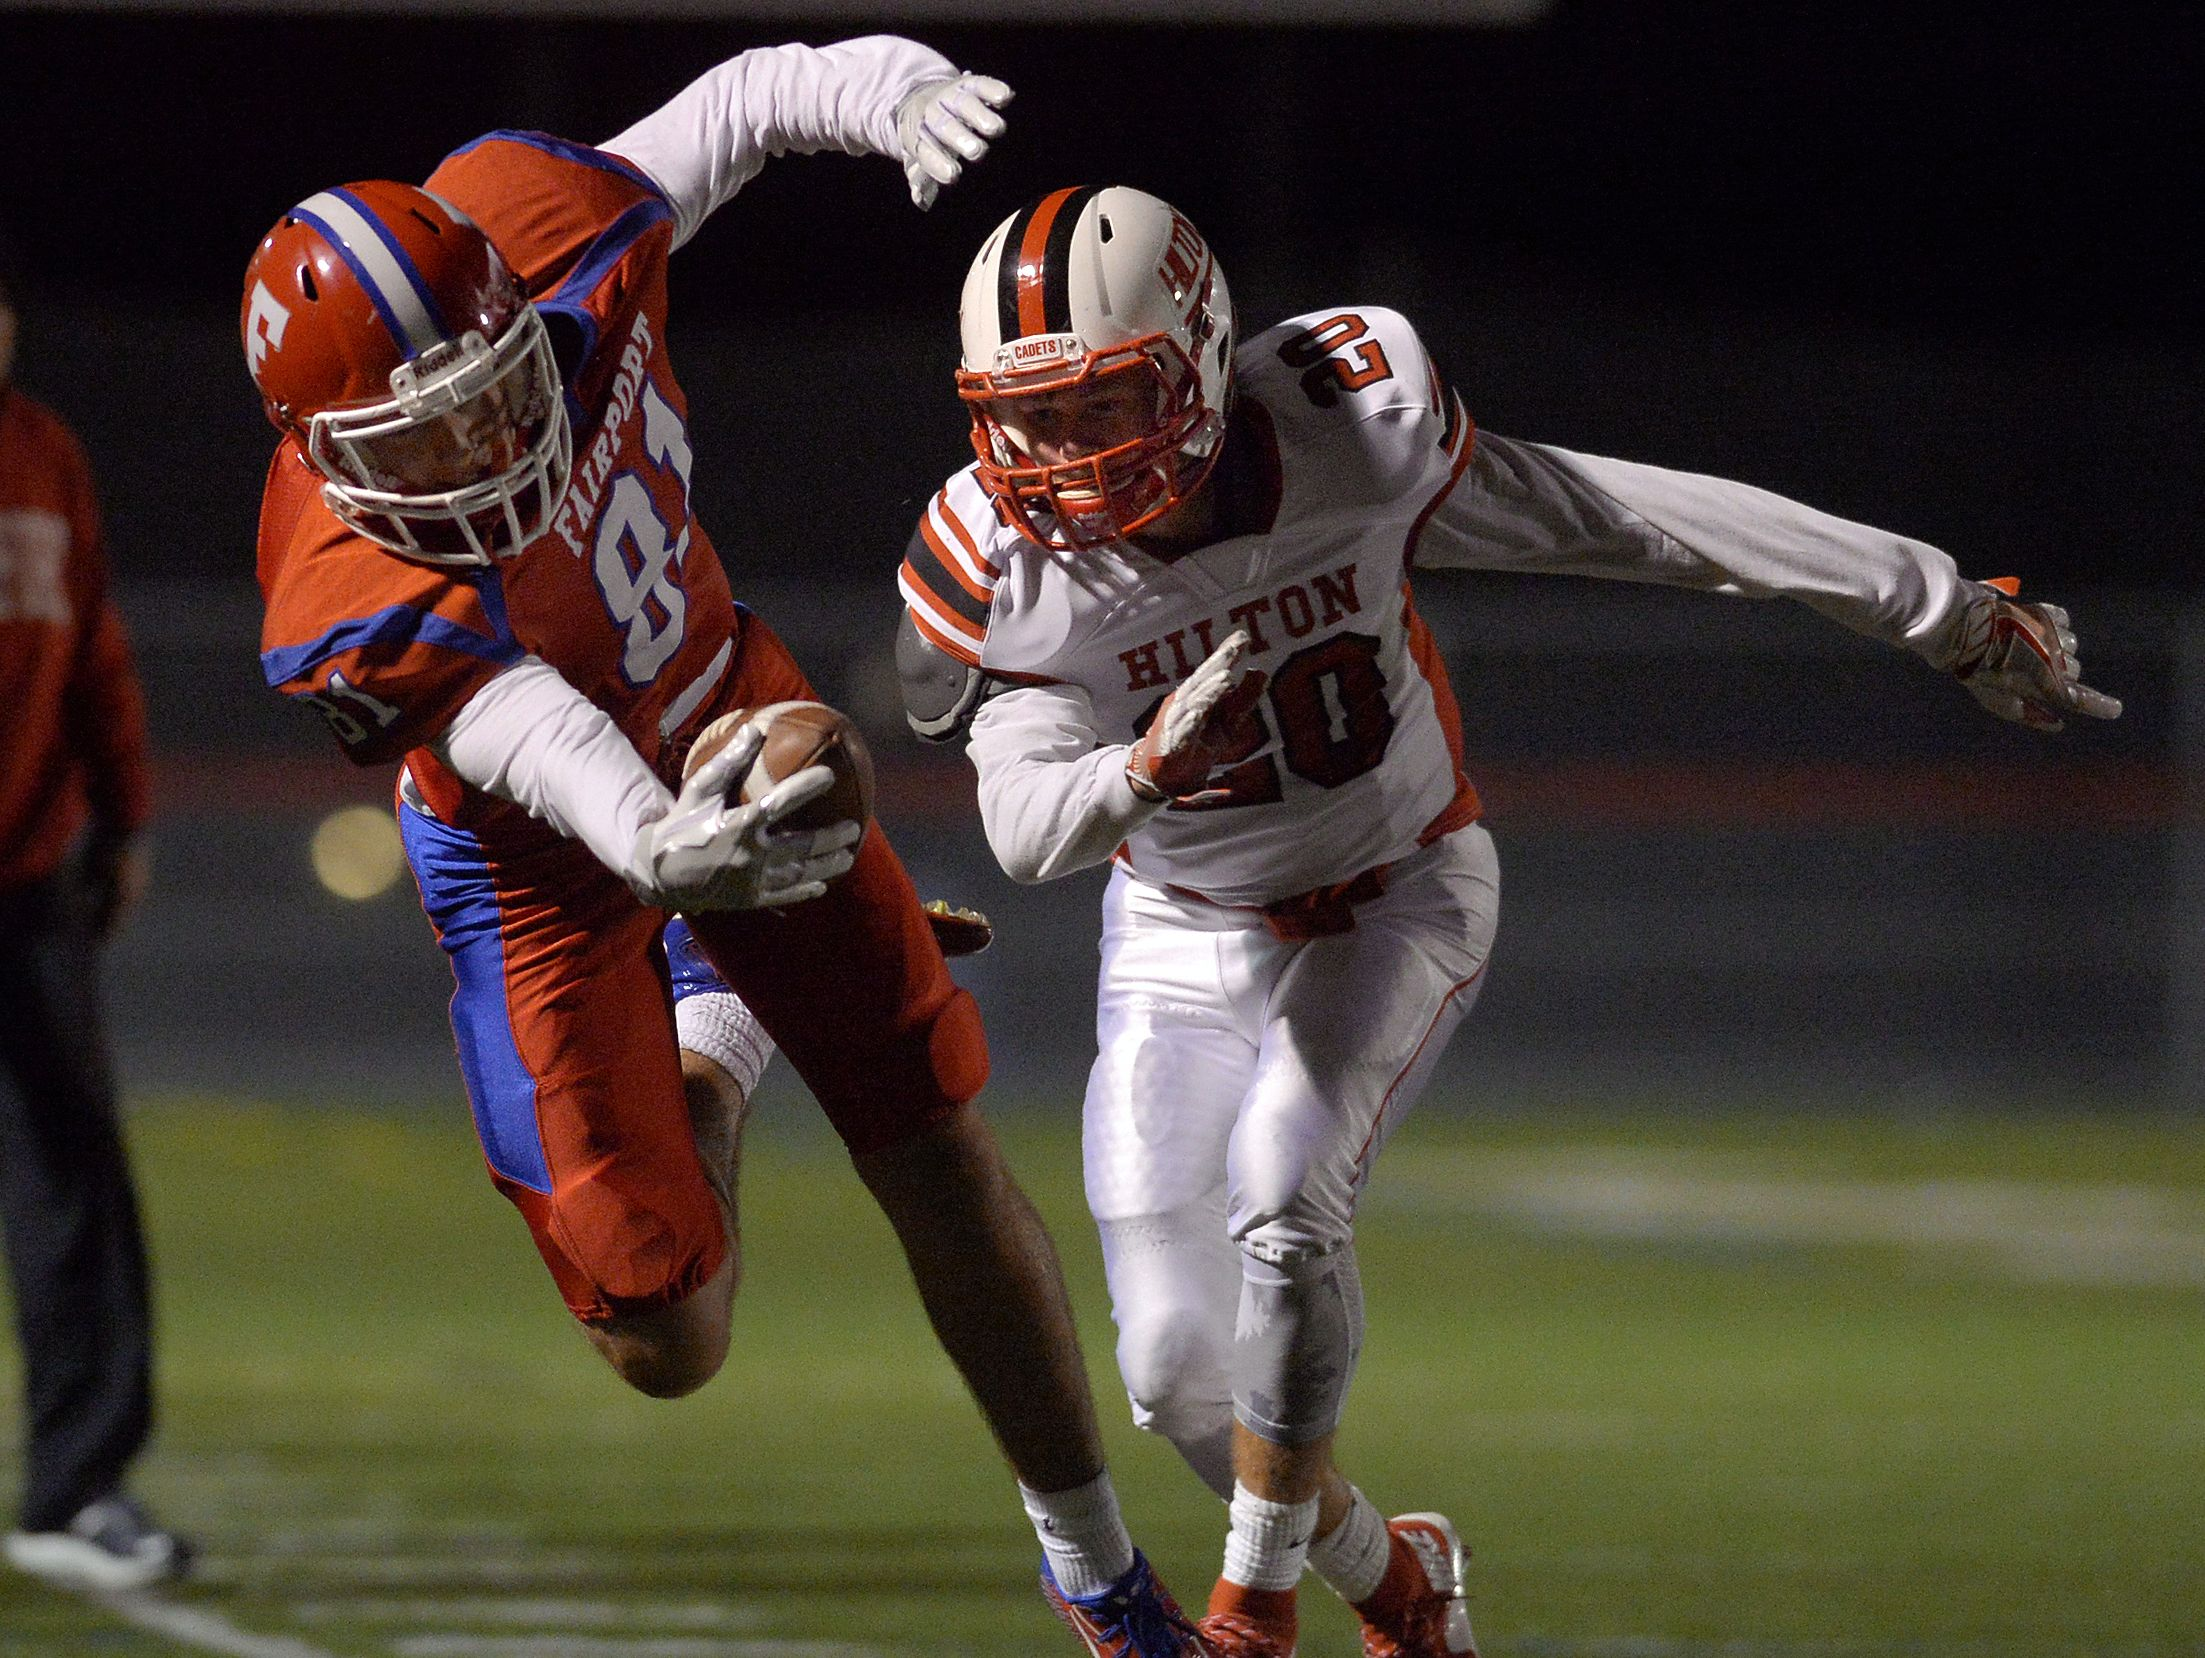 Fairport's Steve Gable reaches for extra yards after being pushed out of bounds by Hilton's Tyler Dalle a during regular season game at Fairport High School on Oct. 14, 2016.